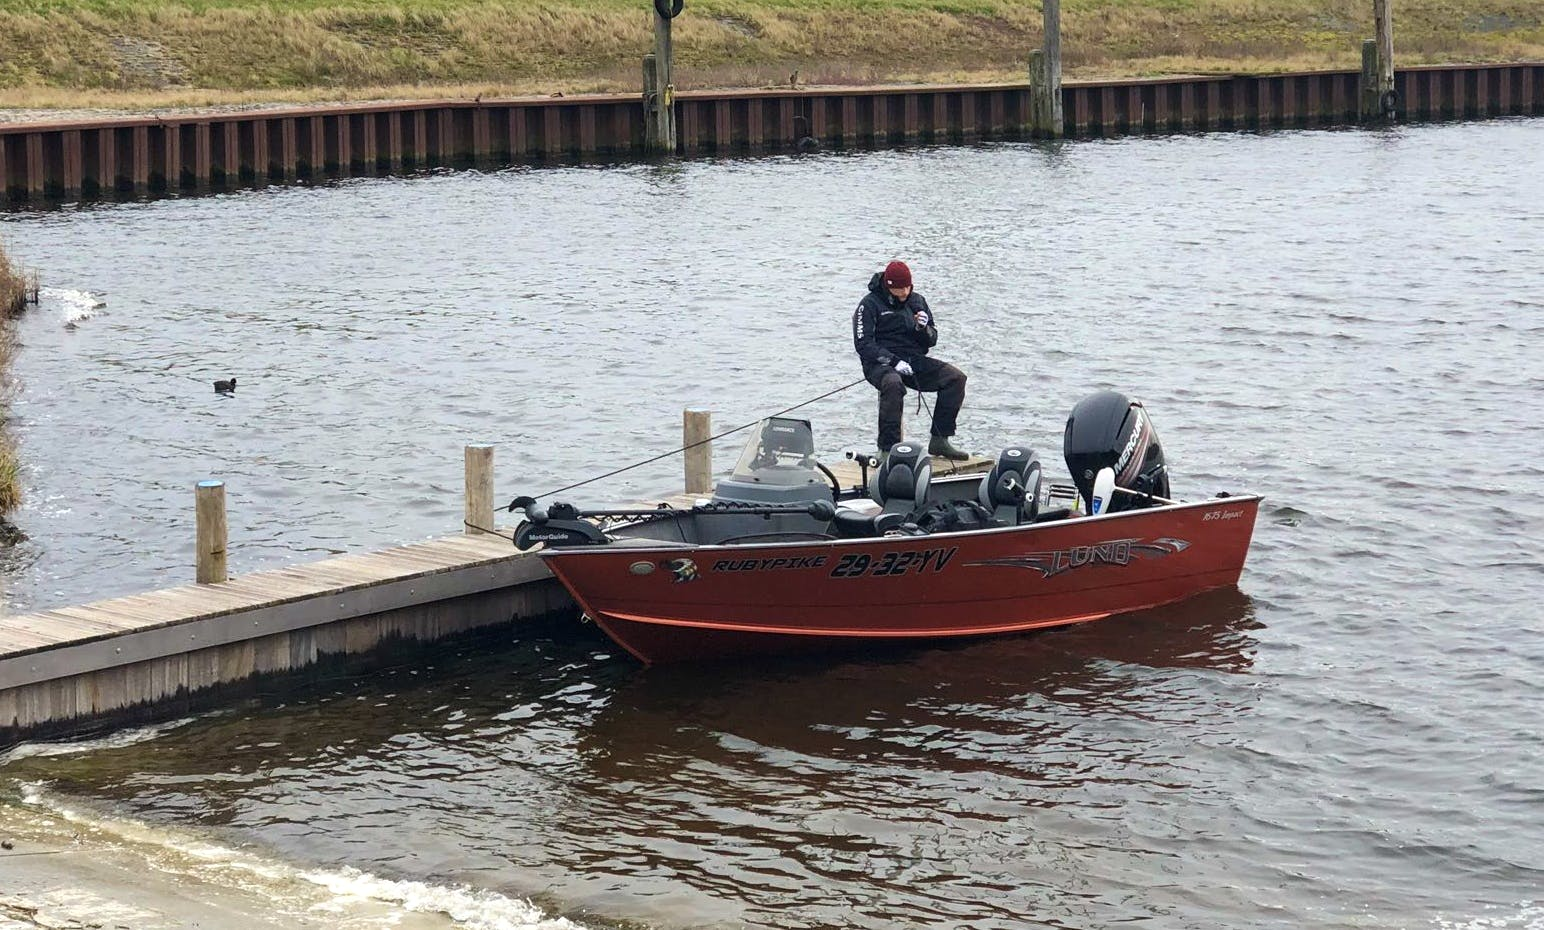 Enjoy Fishing in the Netherlands (Volkerak, Haringvliet, Hollands Diep, Veluwemeer) on the RubyPike : Lund Impact SS 1675 BassBoat